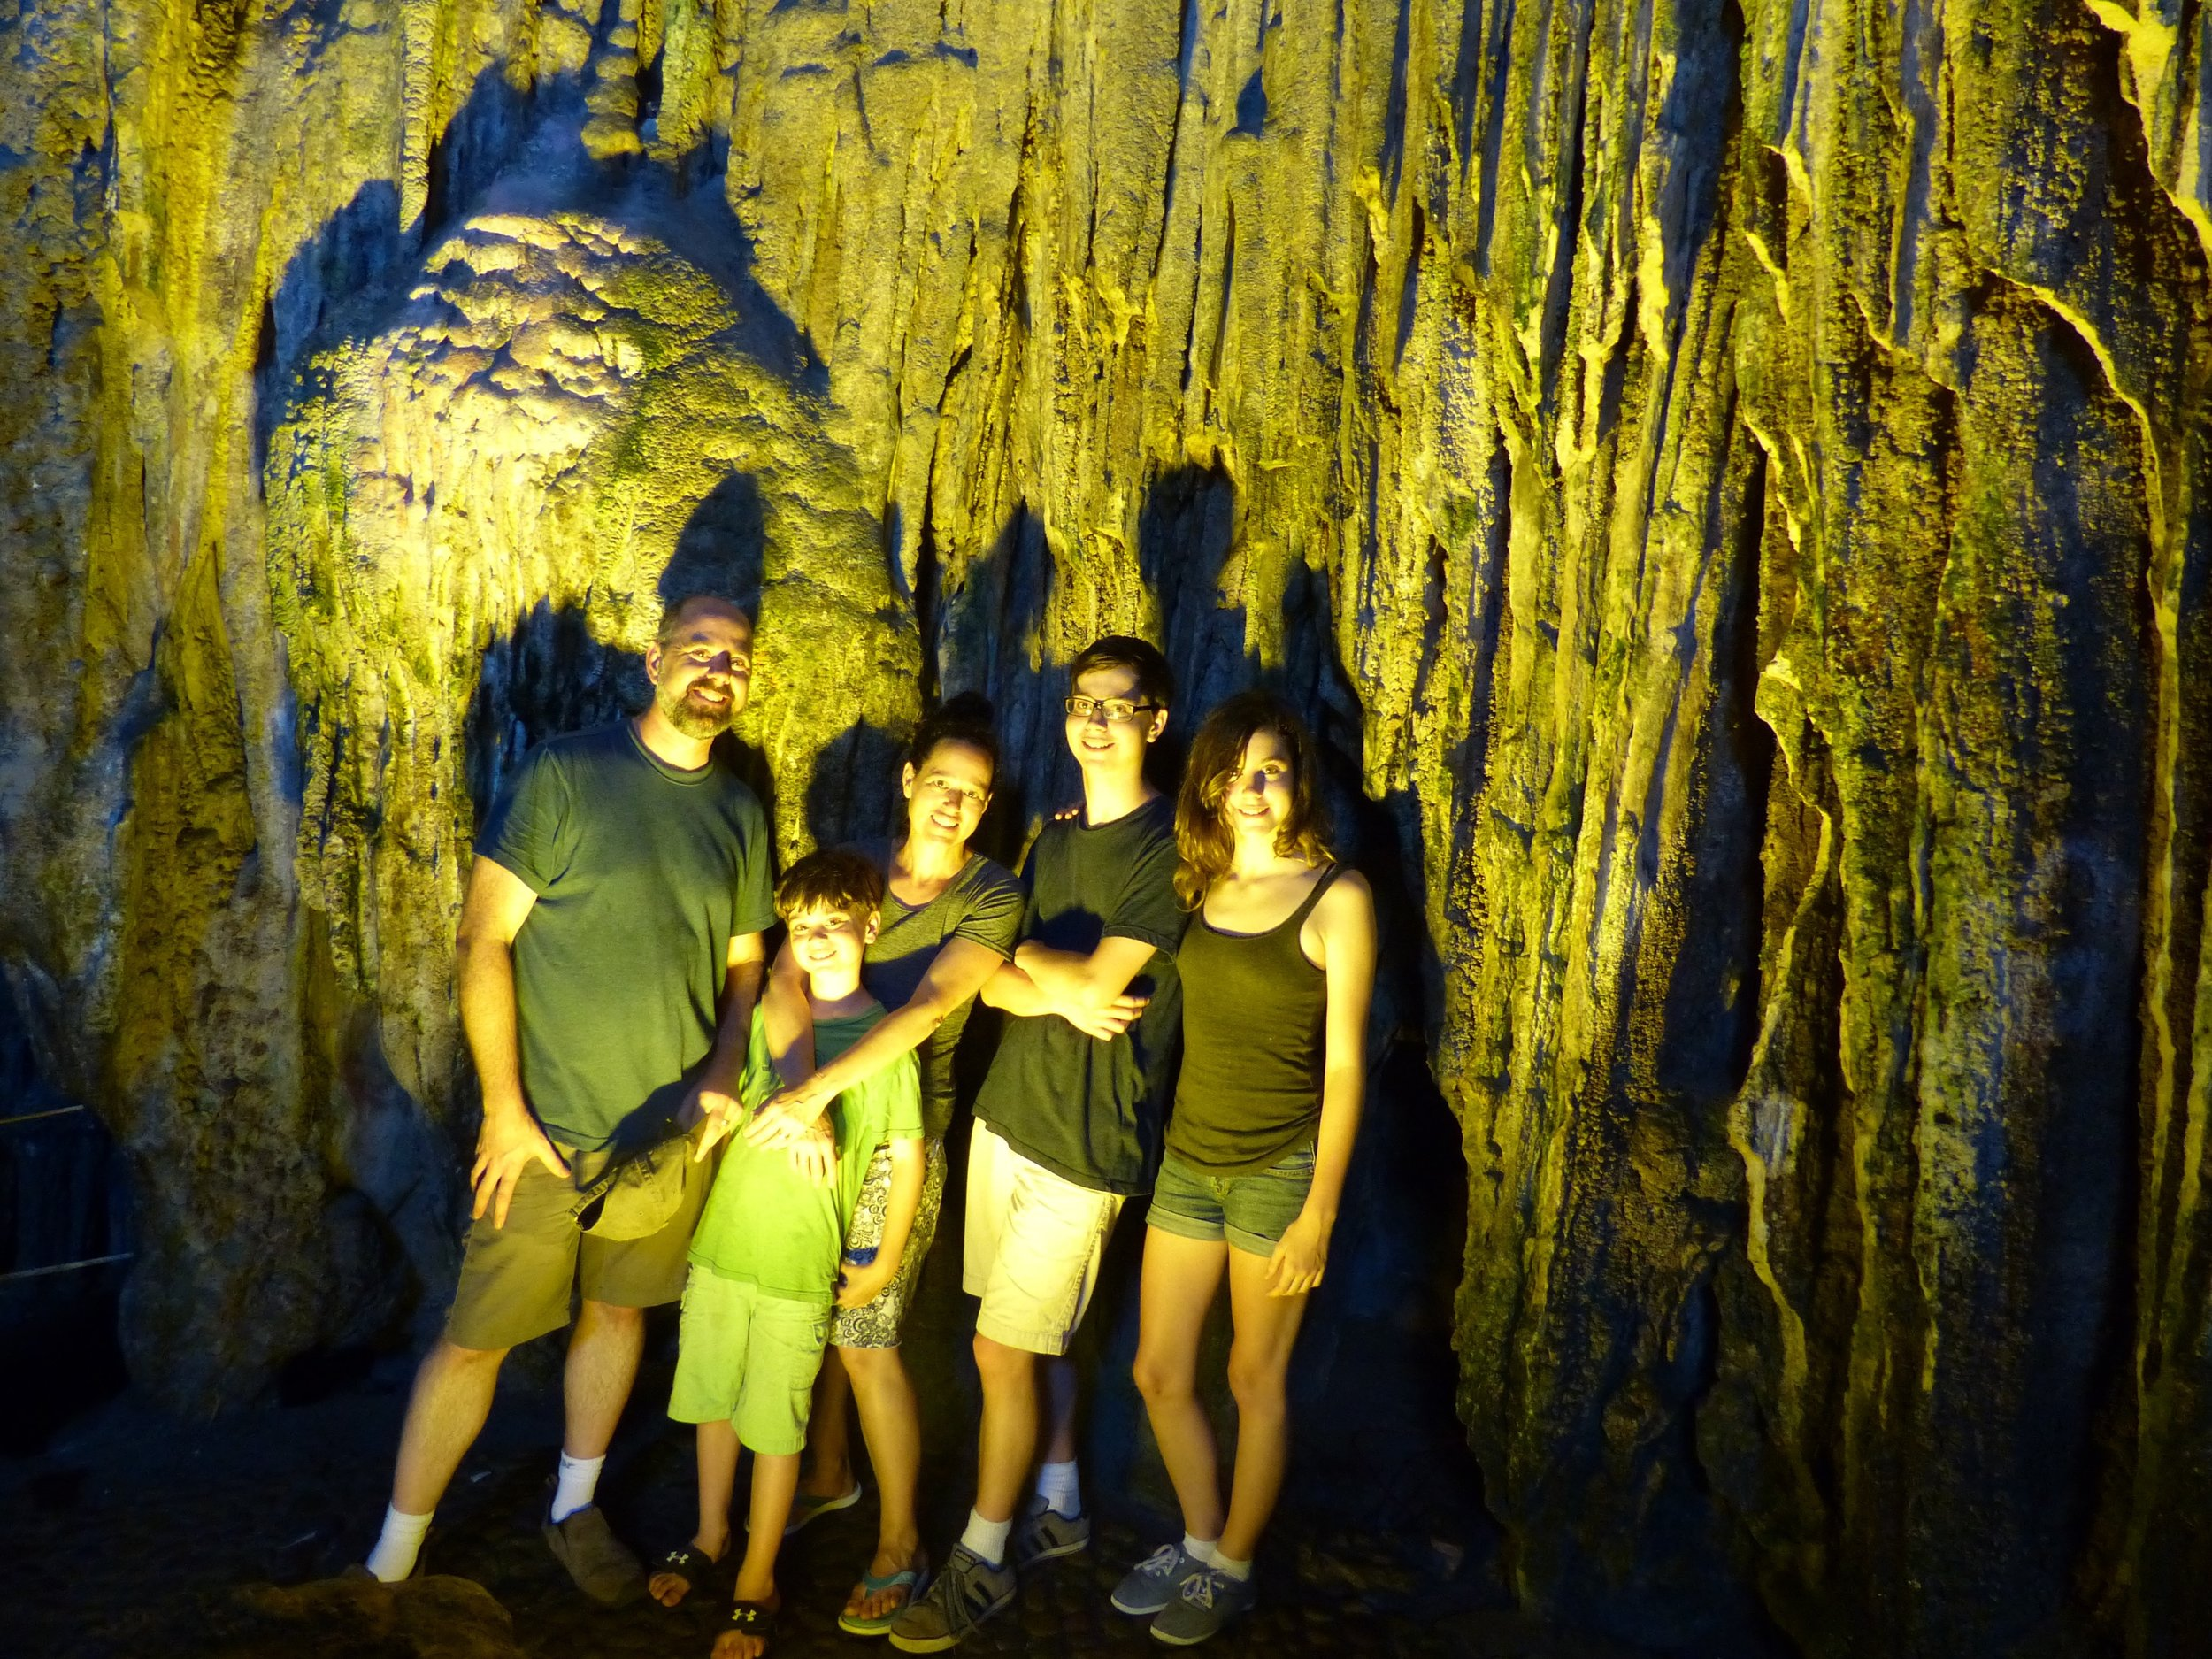 Our trip included a tour of this old pirate cave.